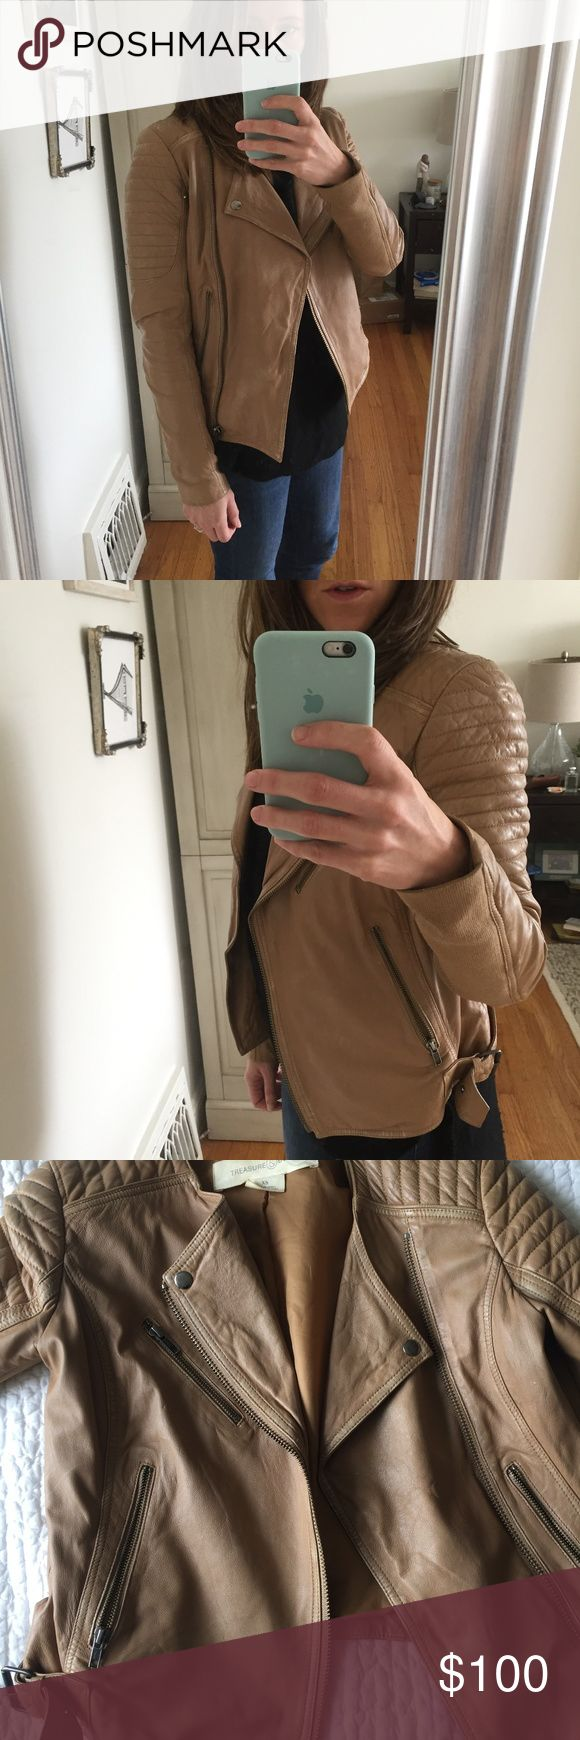 Treasure and Bond Camel Leather Jacket - XS Camel colored moto-style leather jacket from Treasure and Bond, purchased at Nordstrom. XS. In very good condition, with just a bit of wear noticeable on the arm (last photo). Treasure & Bond Jackets & Coats